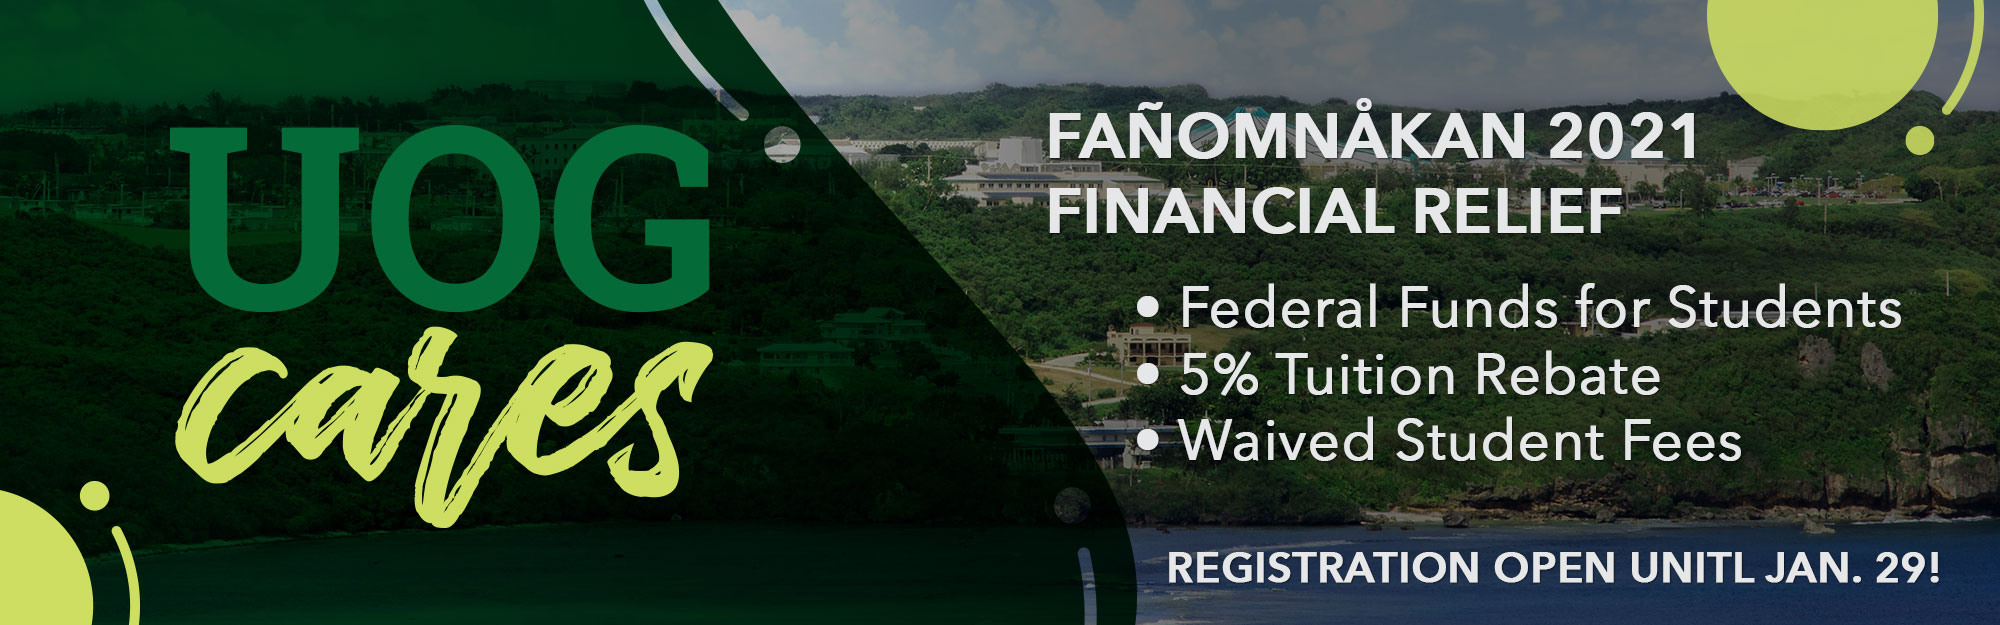 Click to view details of available financial relief for Fañomnåkan 2021